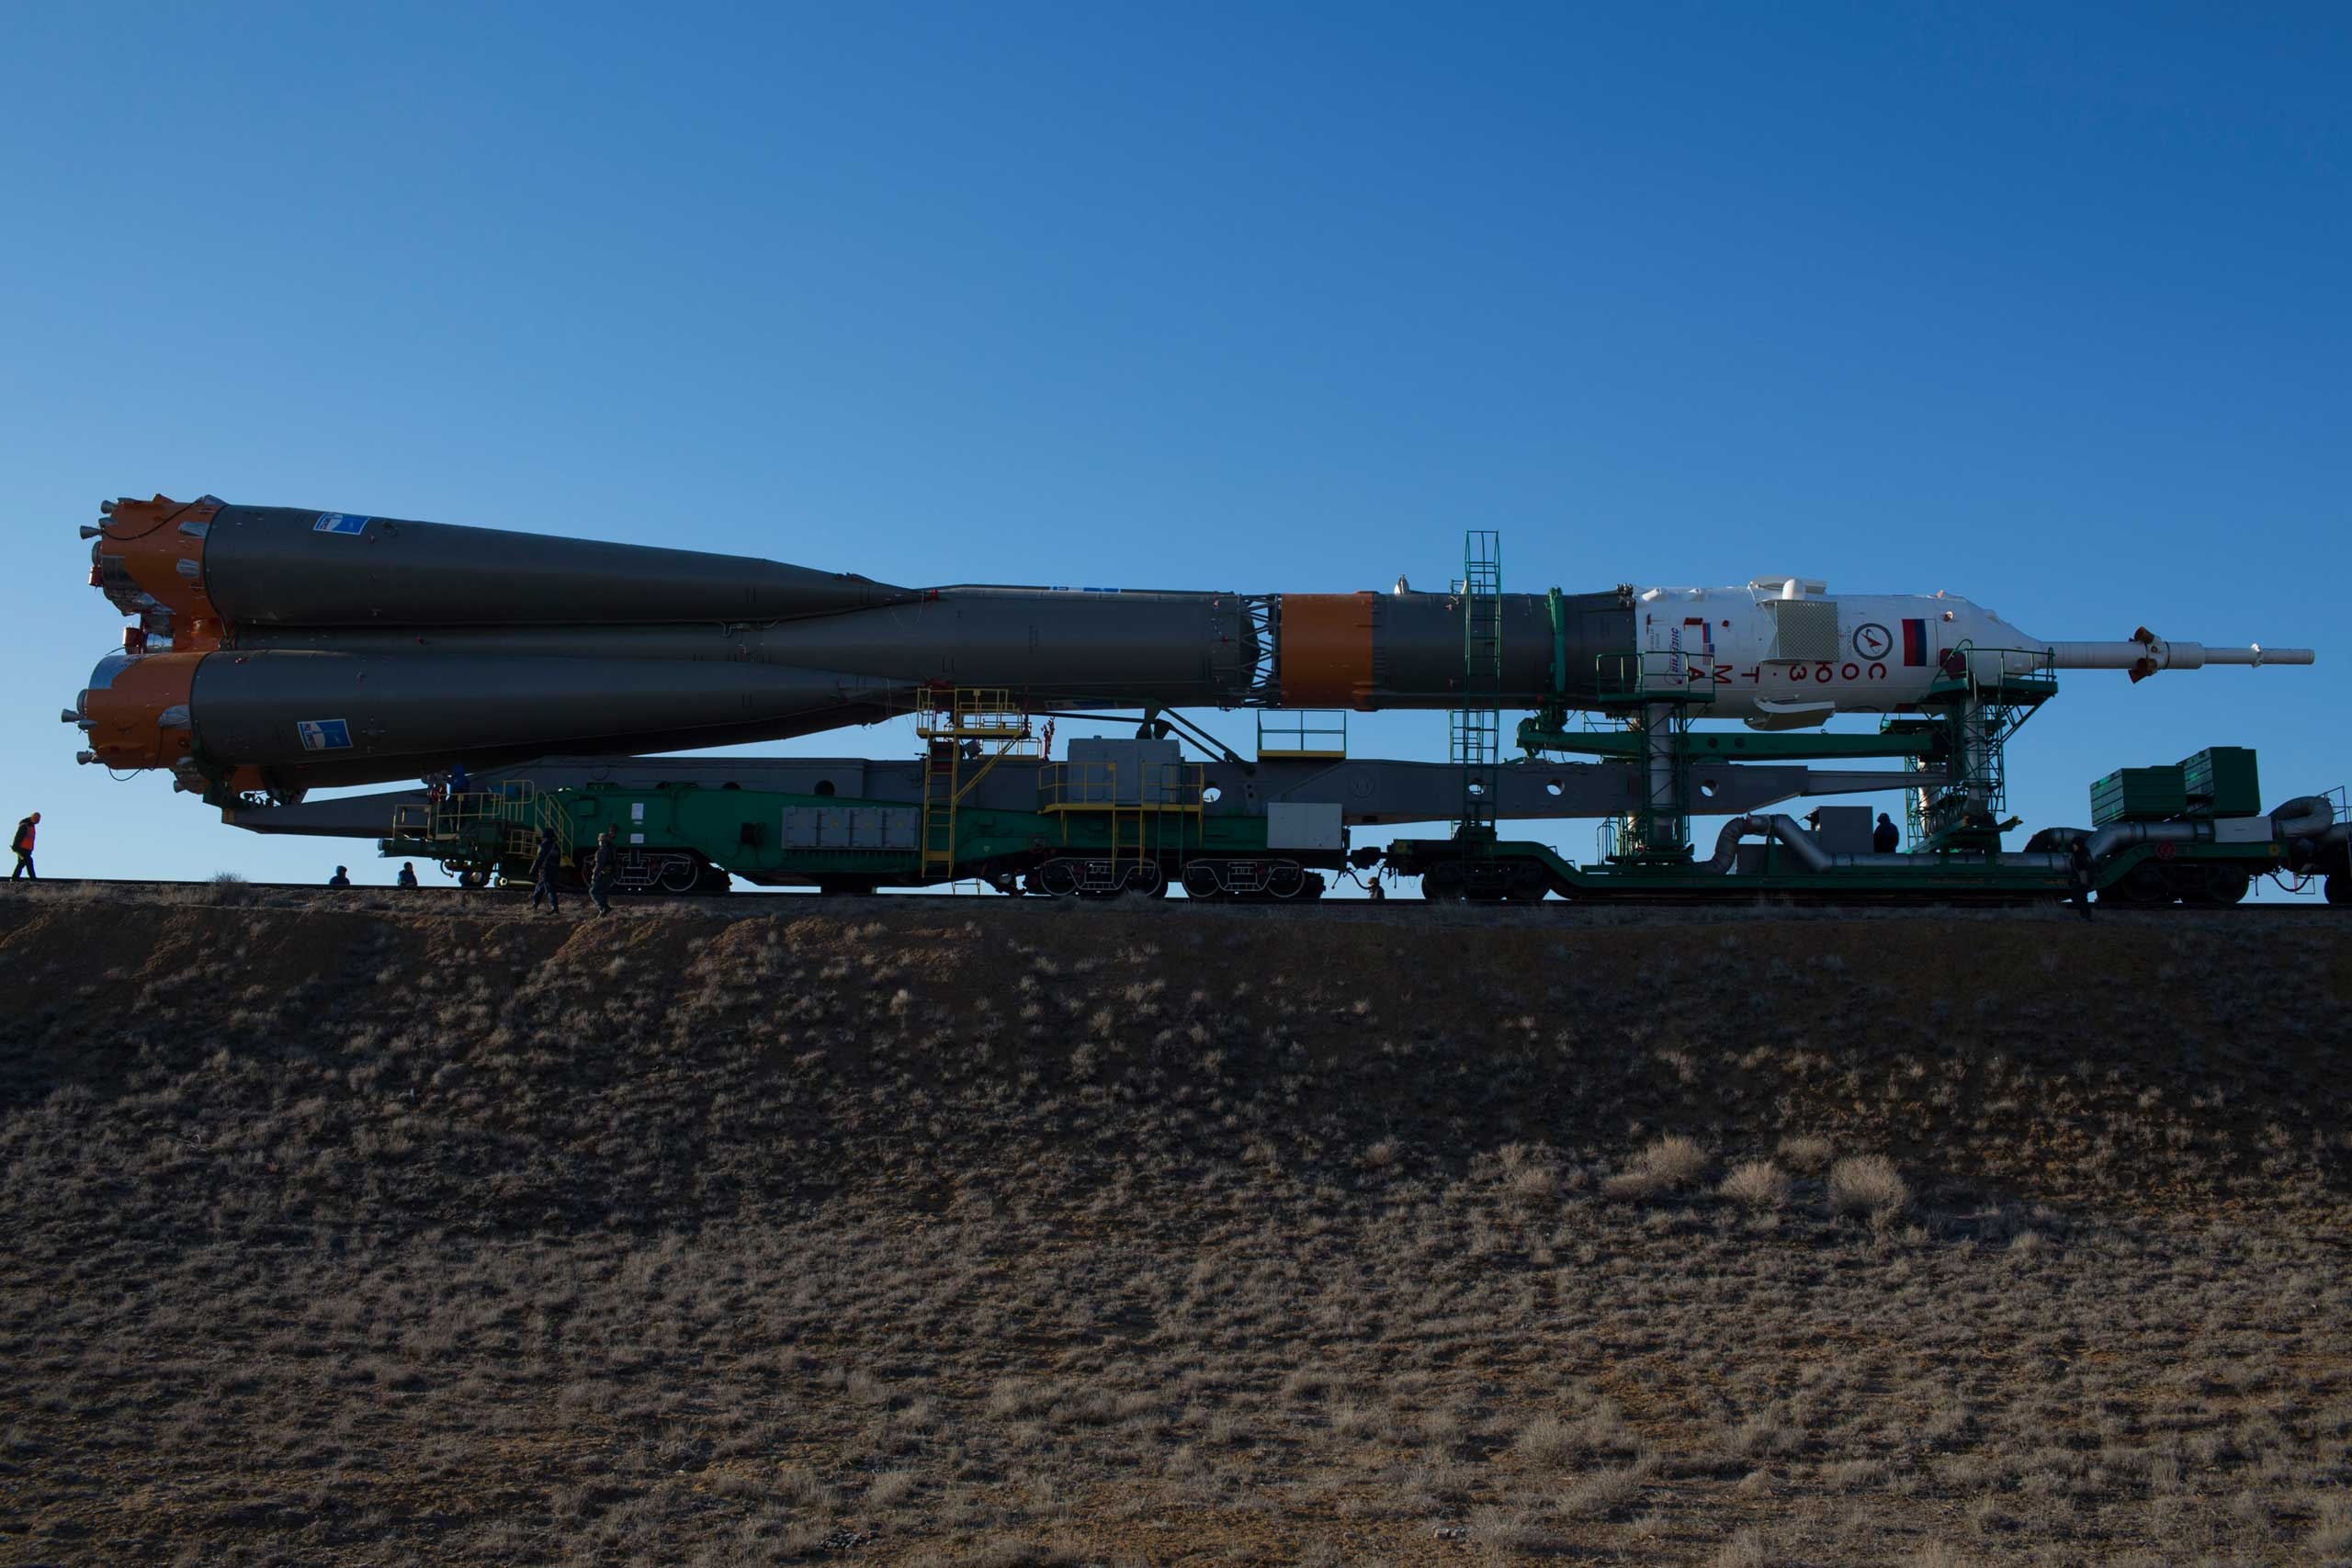 Roscosmos and guard service officials are dwarfed by the Soyuz rocket as it approaches Pad 1 at the Baikonur Cosmodrome in Kazakhstan on Wednesday, March 25.